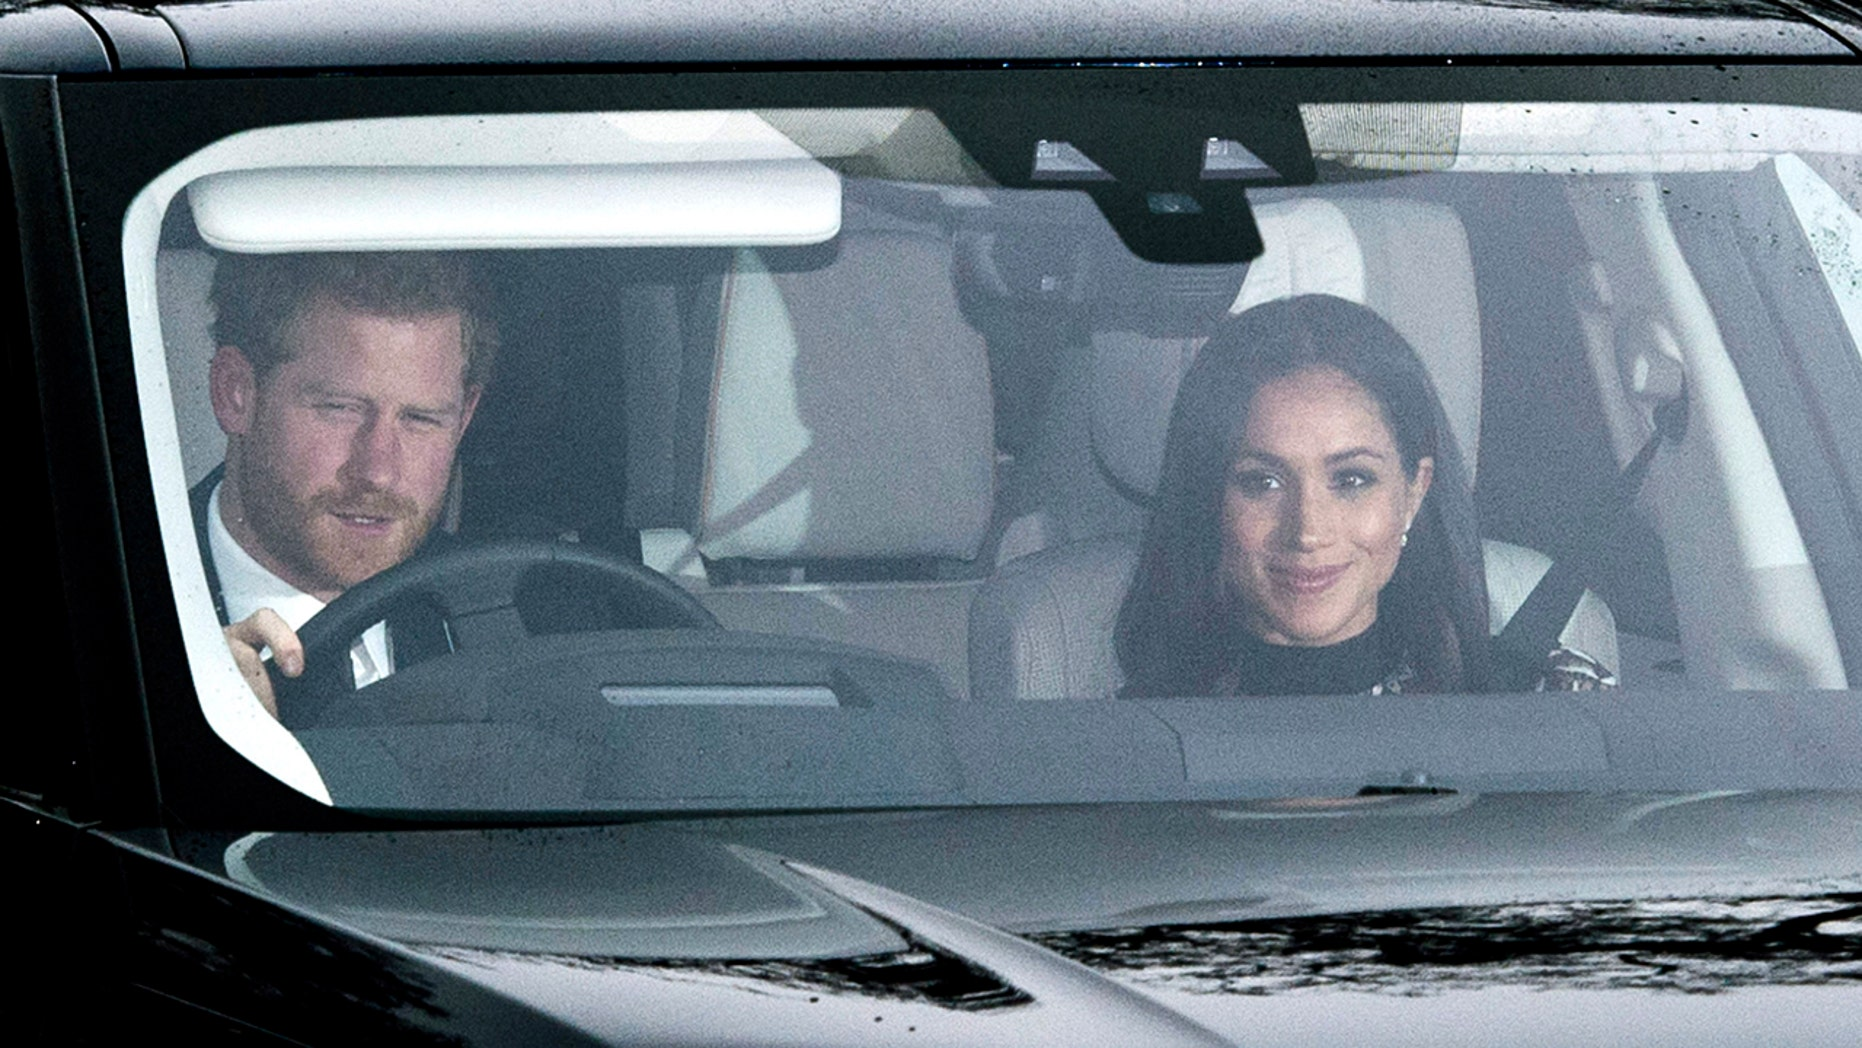 Prince Harry and Meghan Markle arrive together at the annual Christmas lunch for the extended Royal Family at Buckingham Palace on December 20, 2017 in London, England.